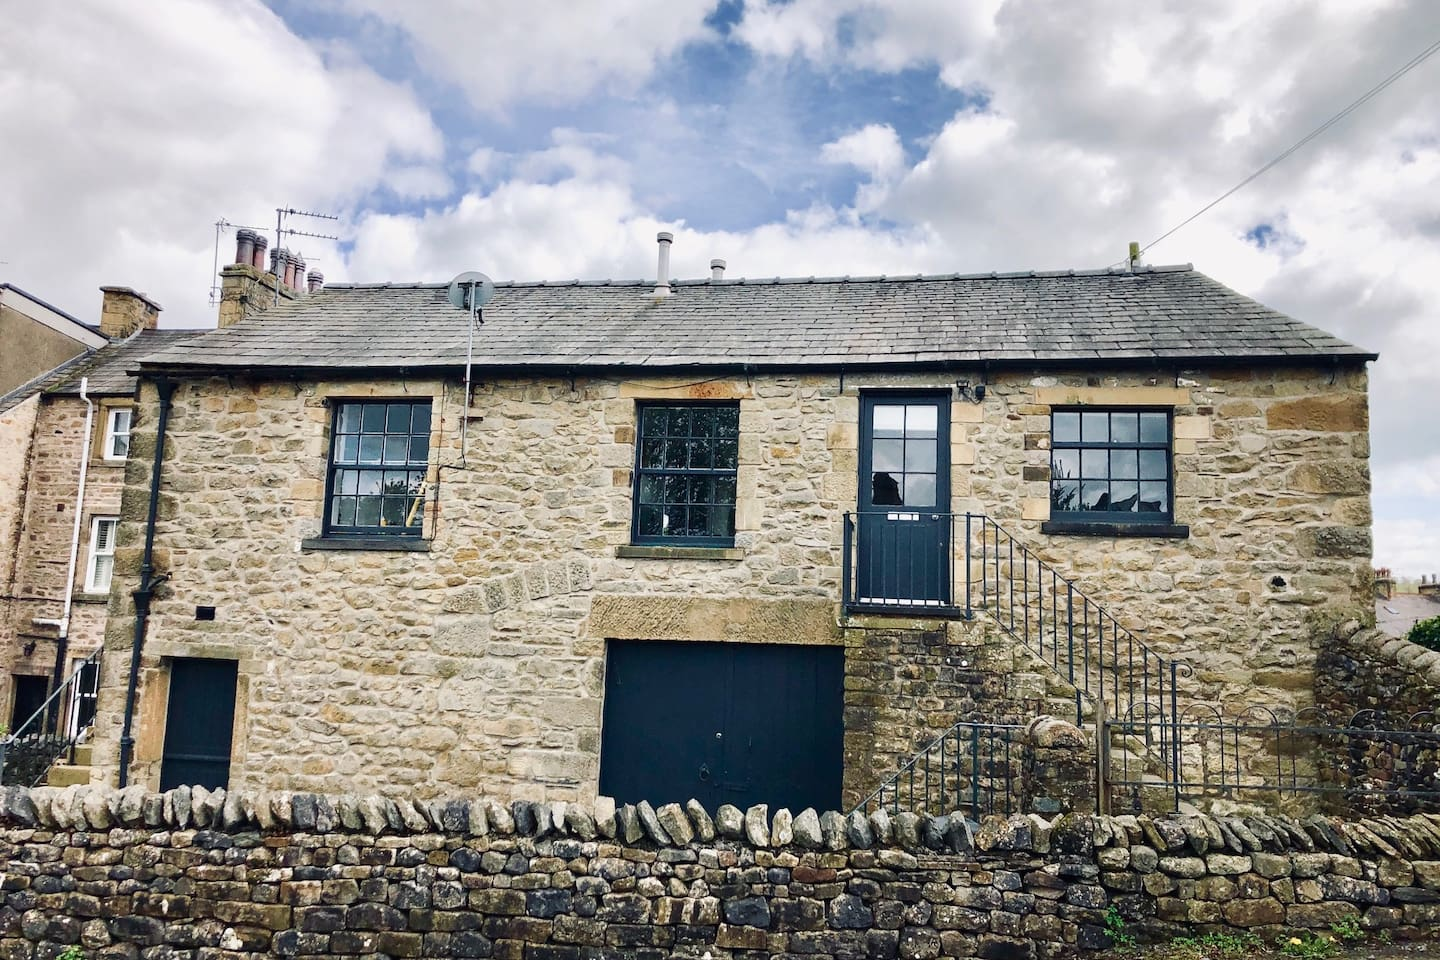 Contemporary living in a detached Yorkshire Dales Barn located close to the centre of Settle